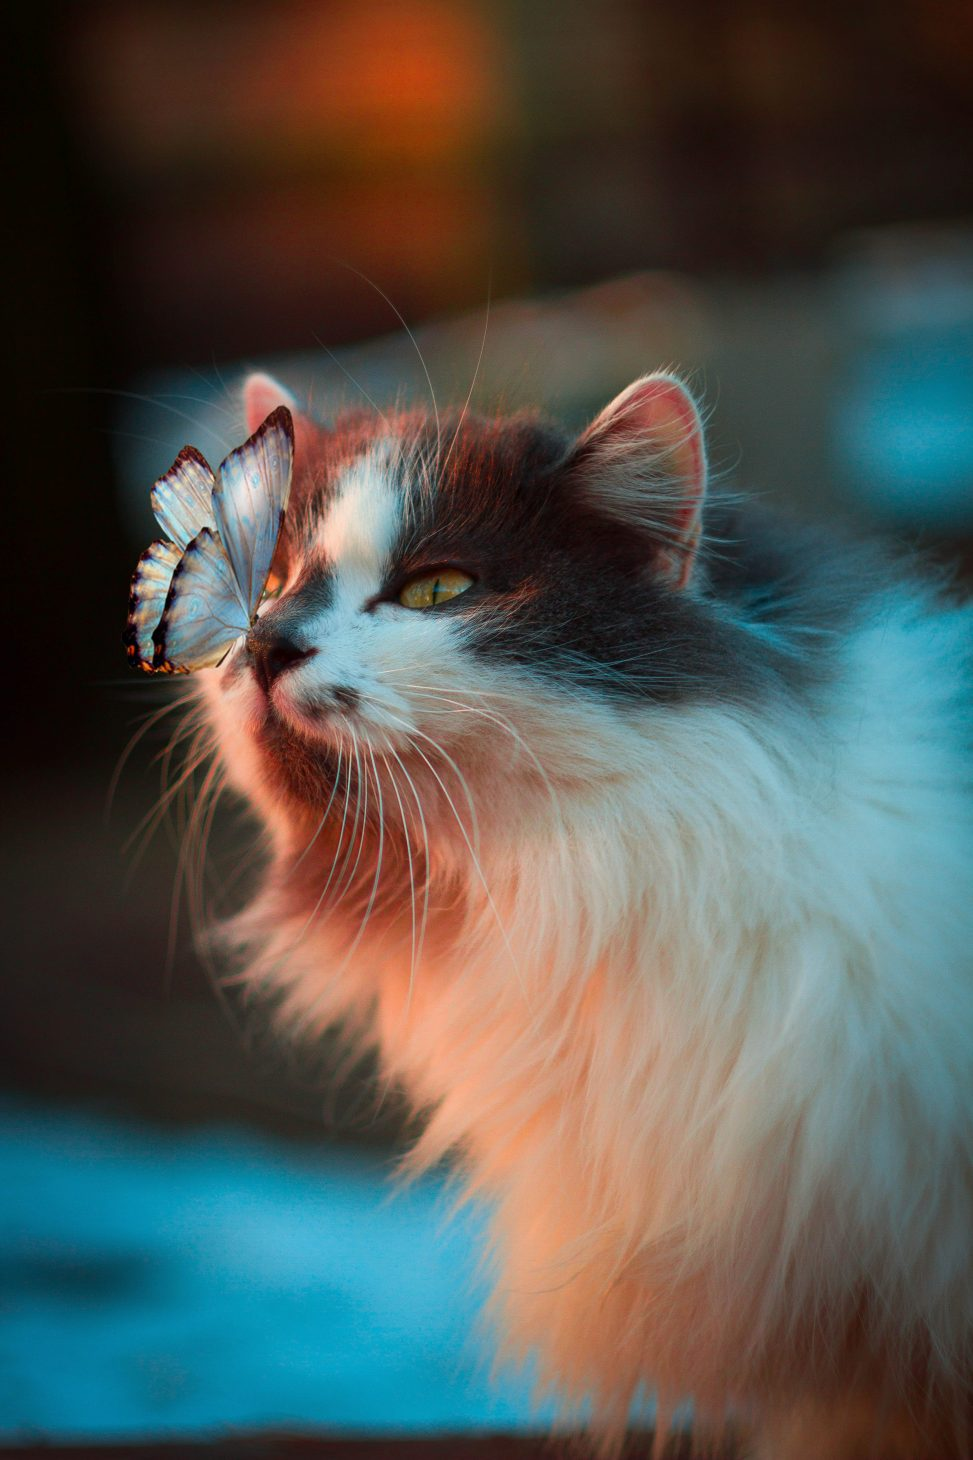 Cat with a butterfly on its nose